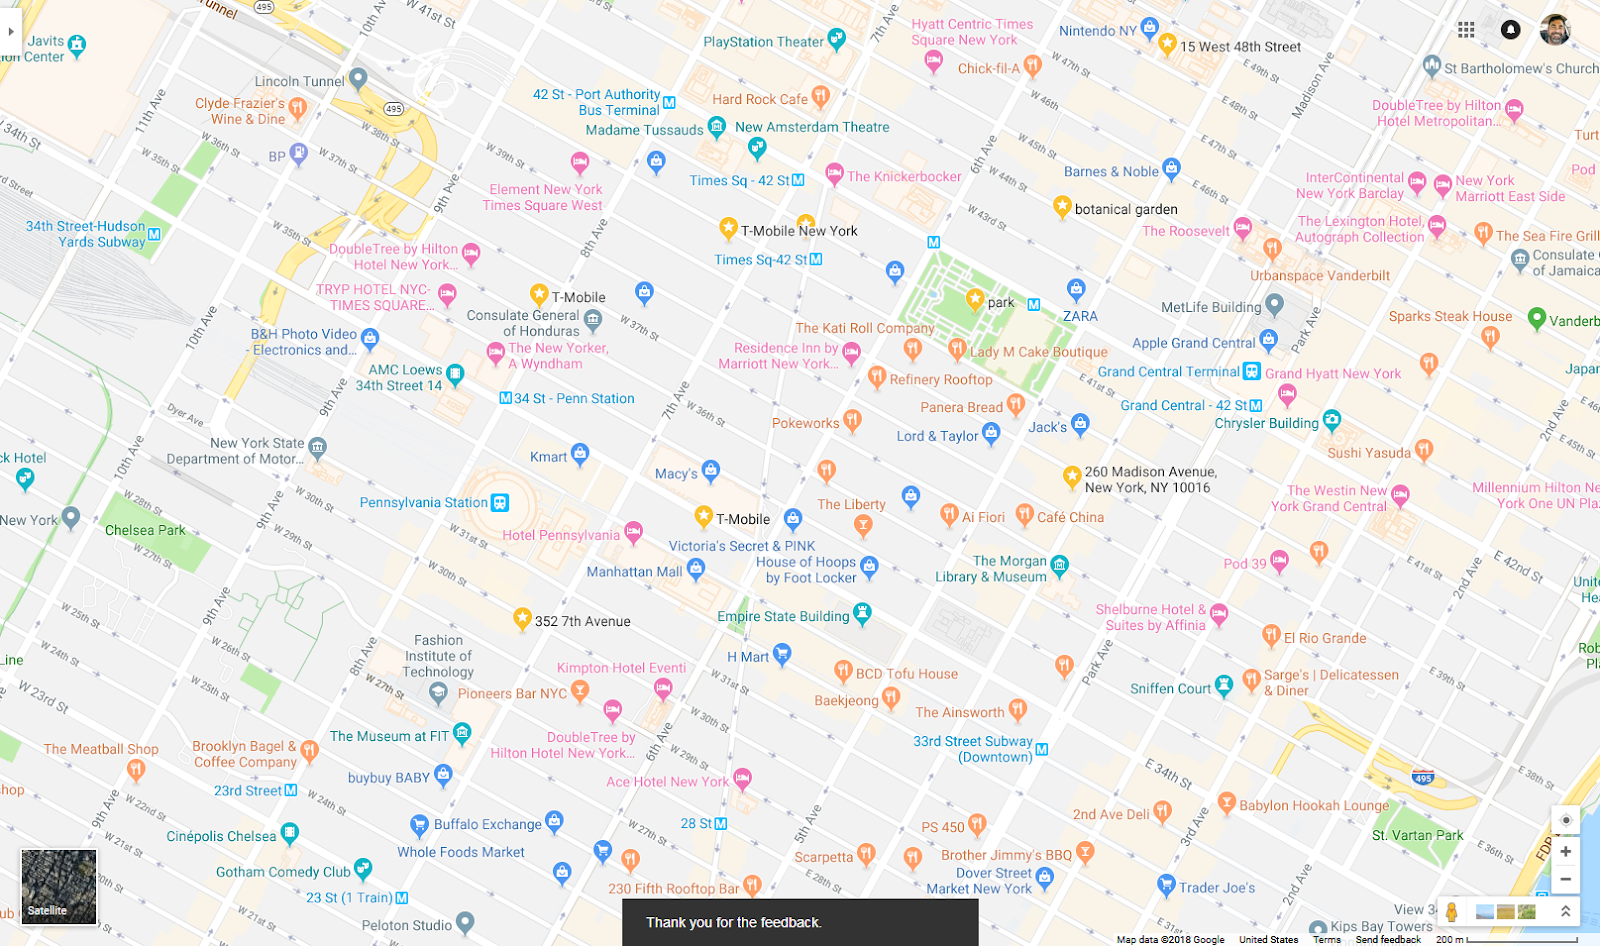 Maps Is Unusable Google Product Forums - Been there map